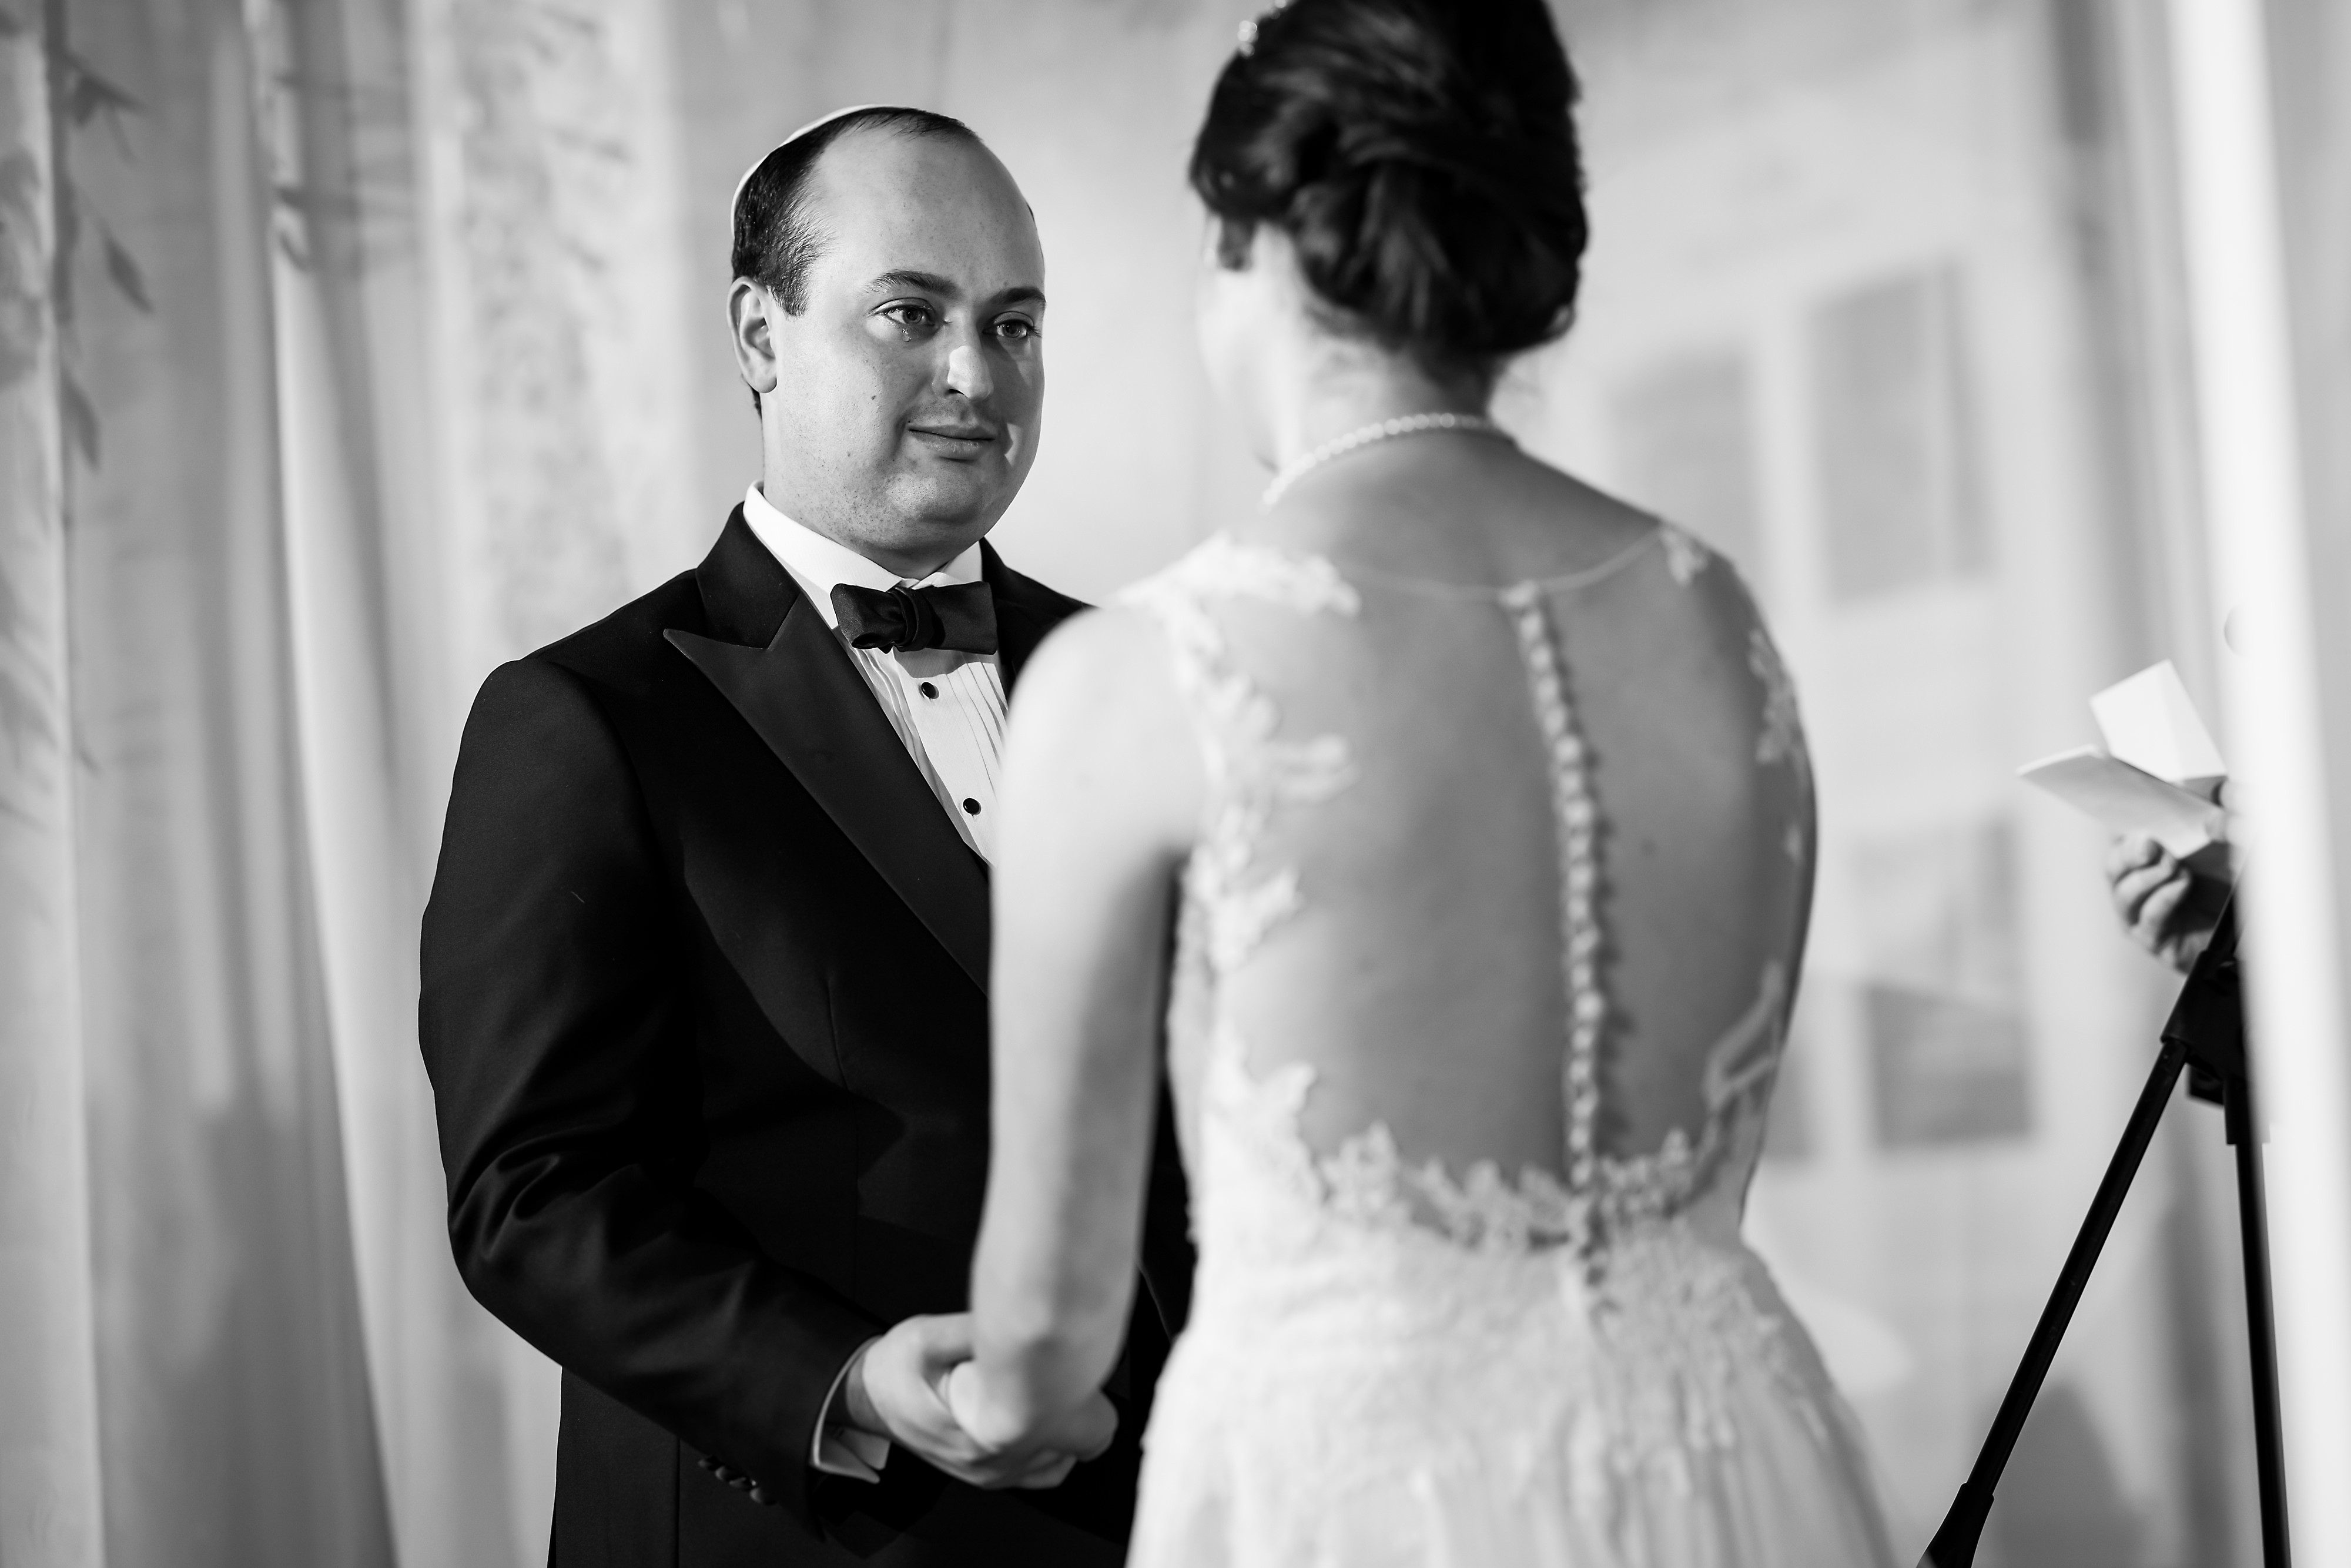 Groom is teary eyed during wedding ceremony at the Rookery Building in Chicago